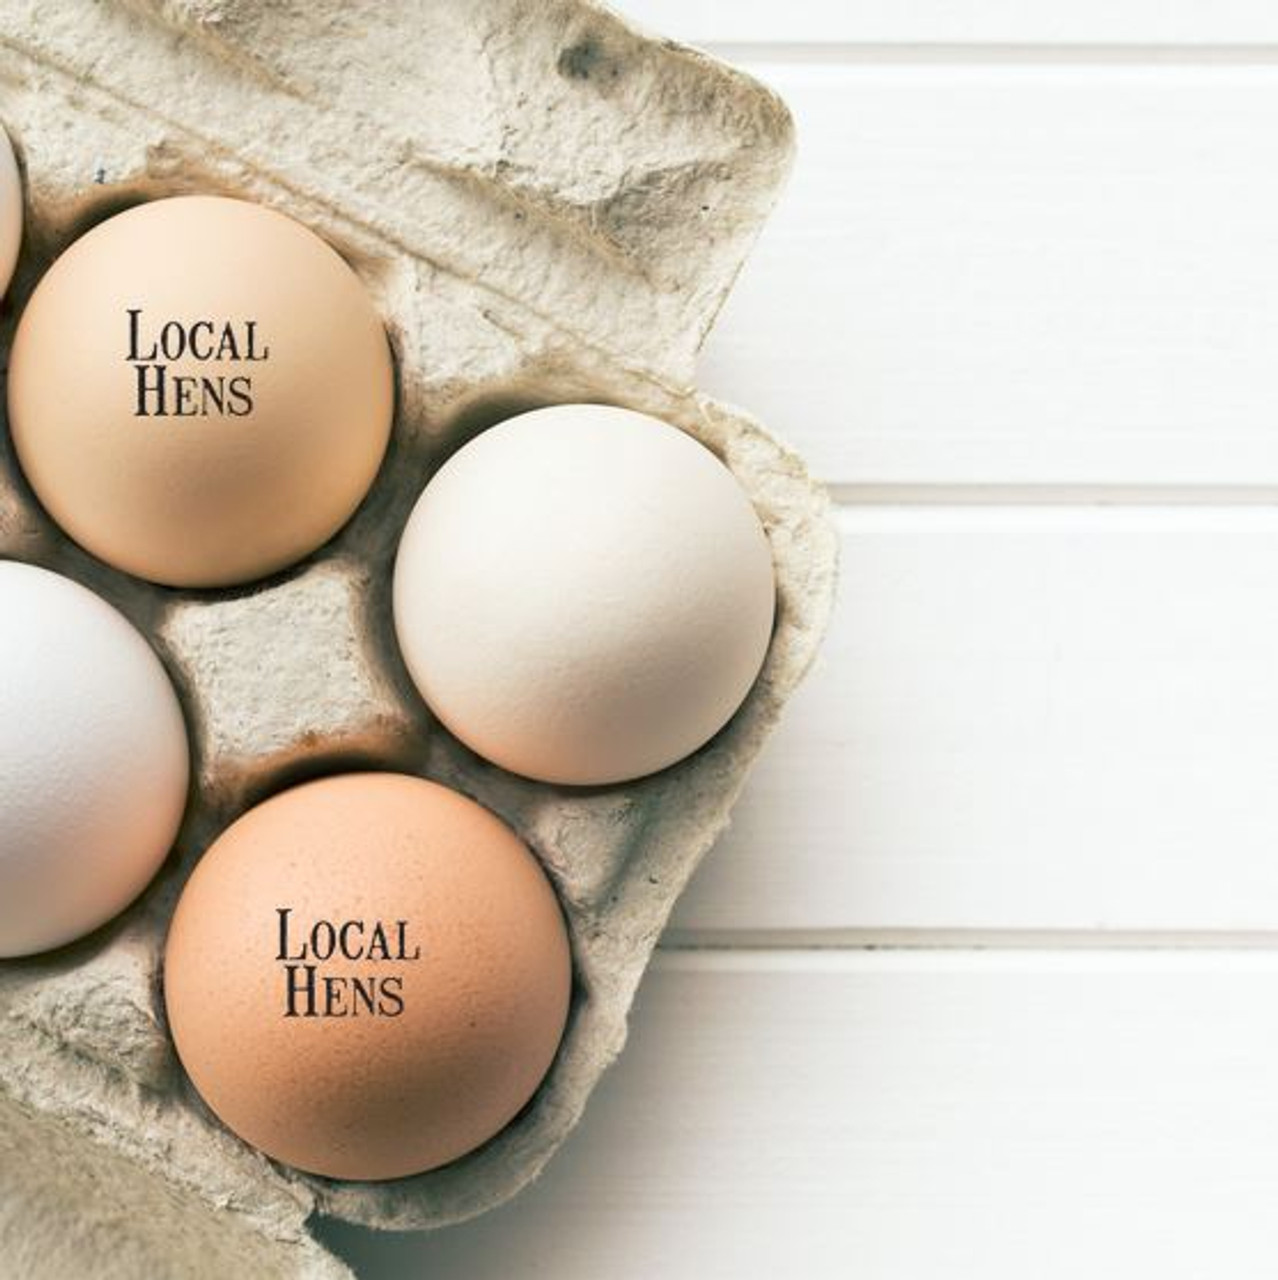 local hens text egg stamp lifestyle 2